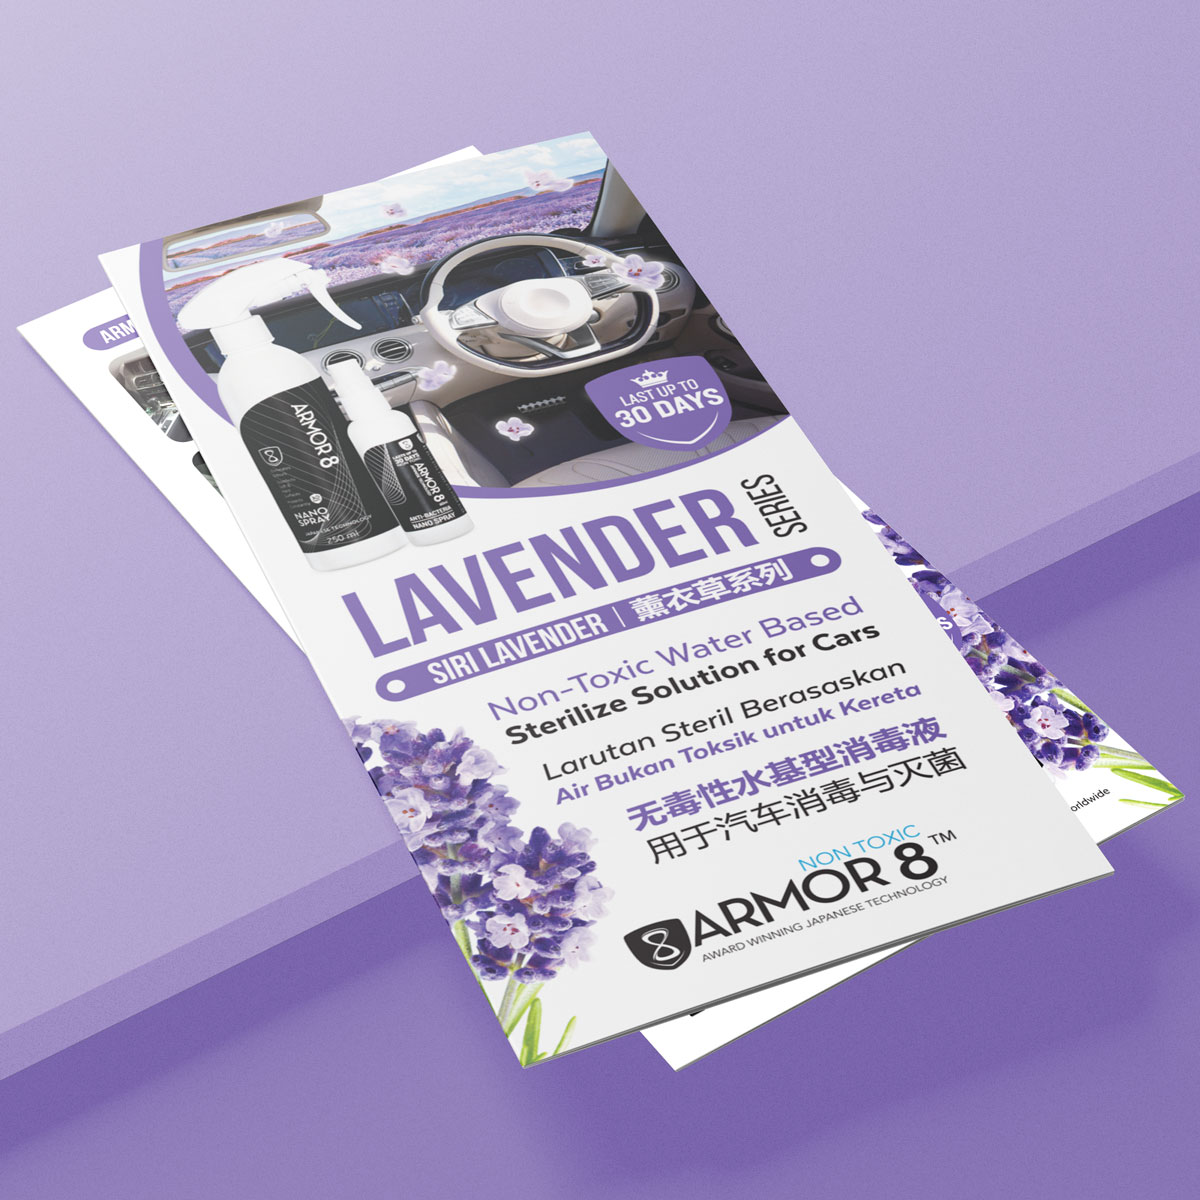 Armor8 Lavender Series for Cars Flyer Design 02